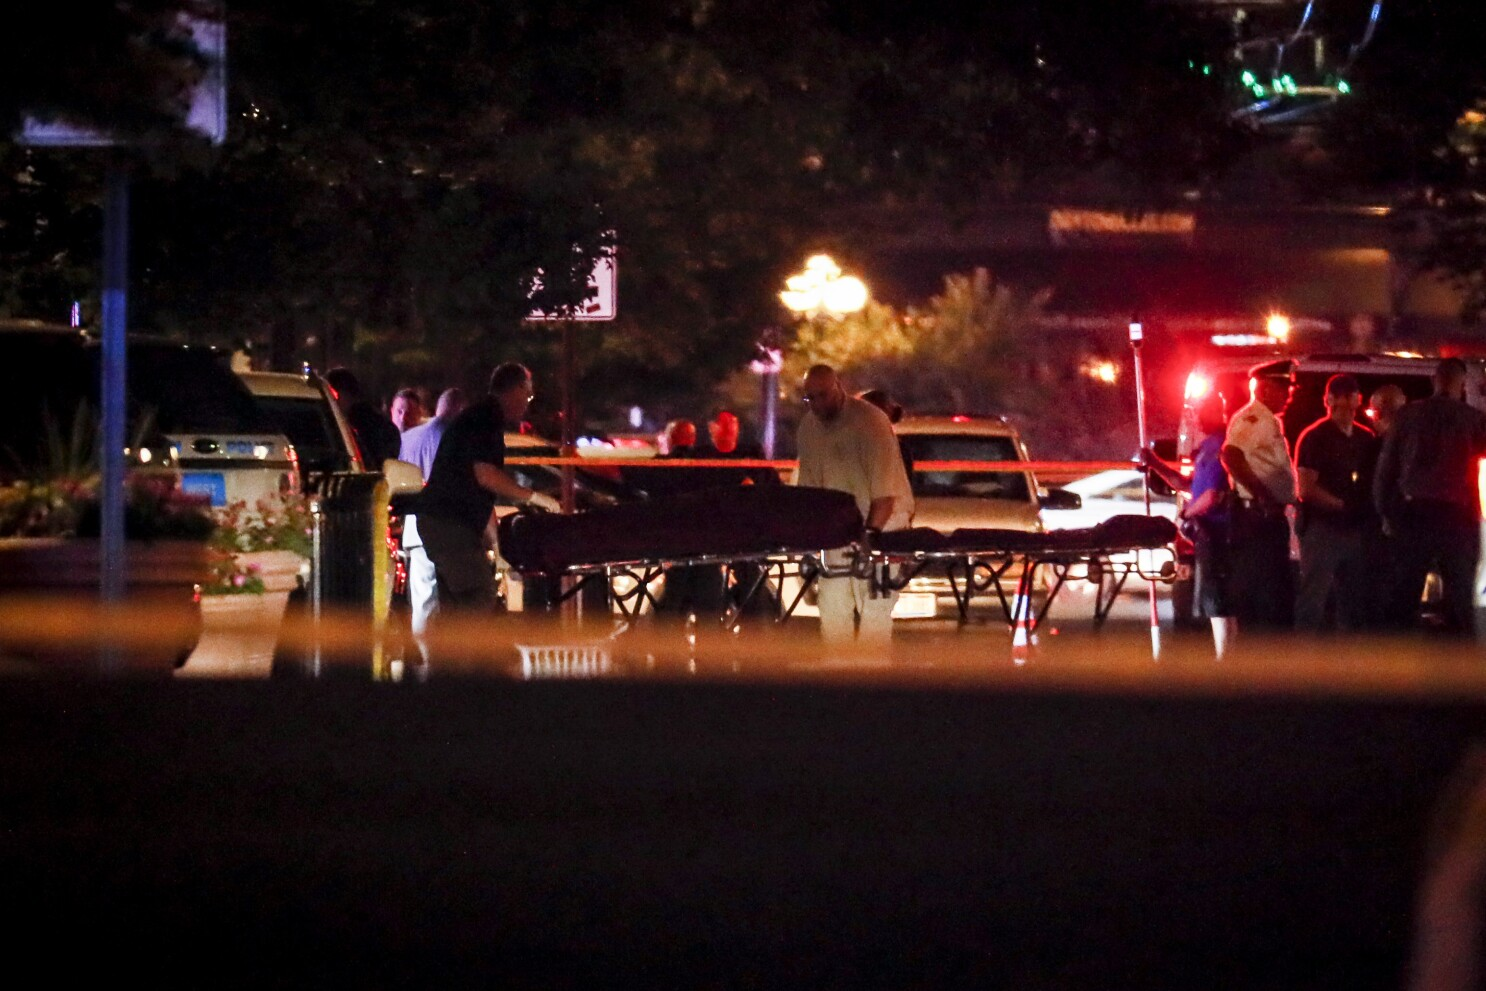 Opinion: Two days, two mass murders in El Paso and Dayton -- just another weekend in America